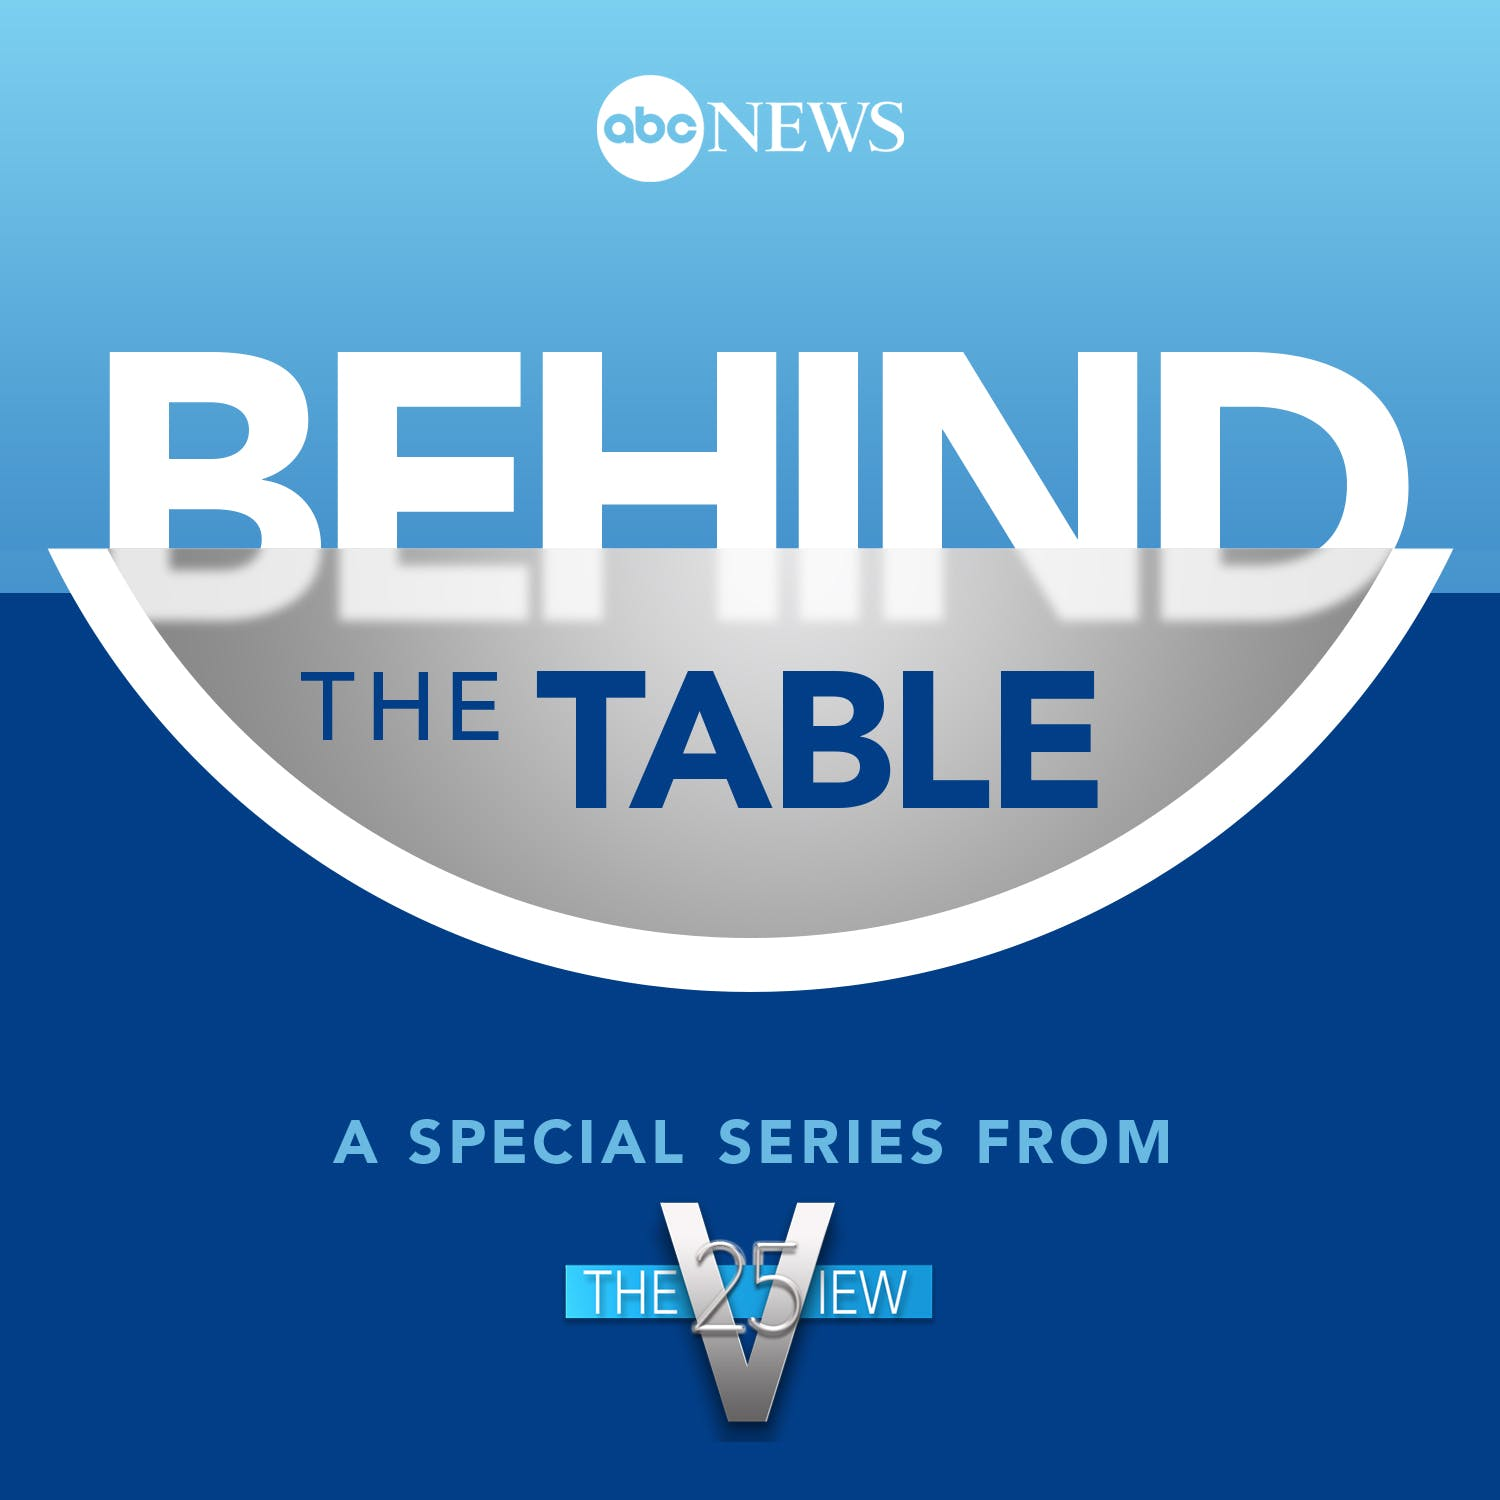 Introducing 'The View: Behind the Table'